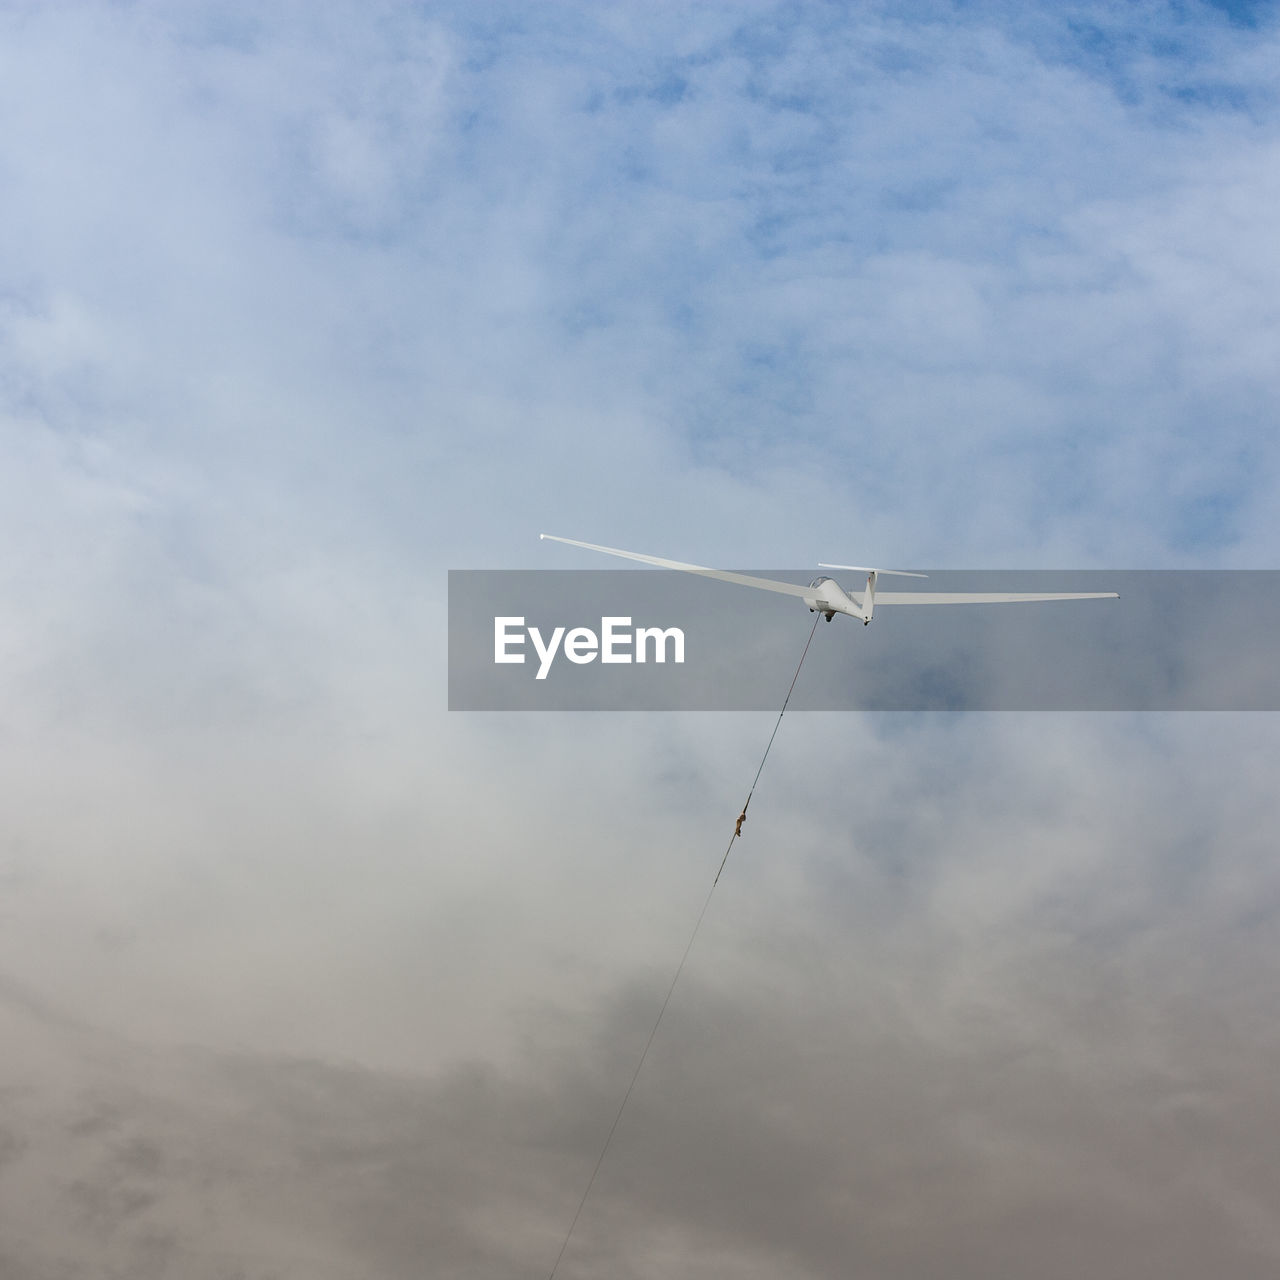 cloud - sky, sky, low angle view, flying, air vehicle, mid-air, no people, nature, day, airplane, motion, transportation, mode of transportation, outdoors, white color, on the move, fuel and power generation, vapor trail, beauty in nature, renewable energy, plane